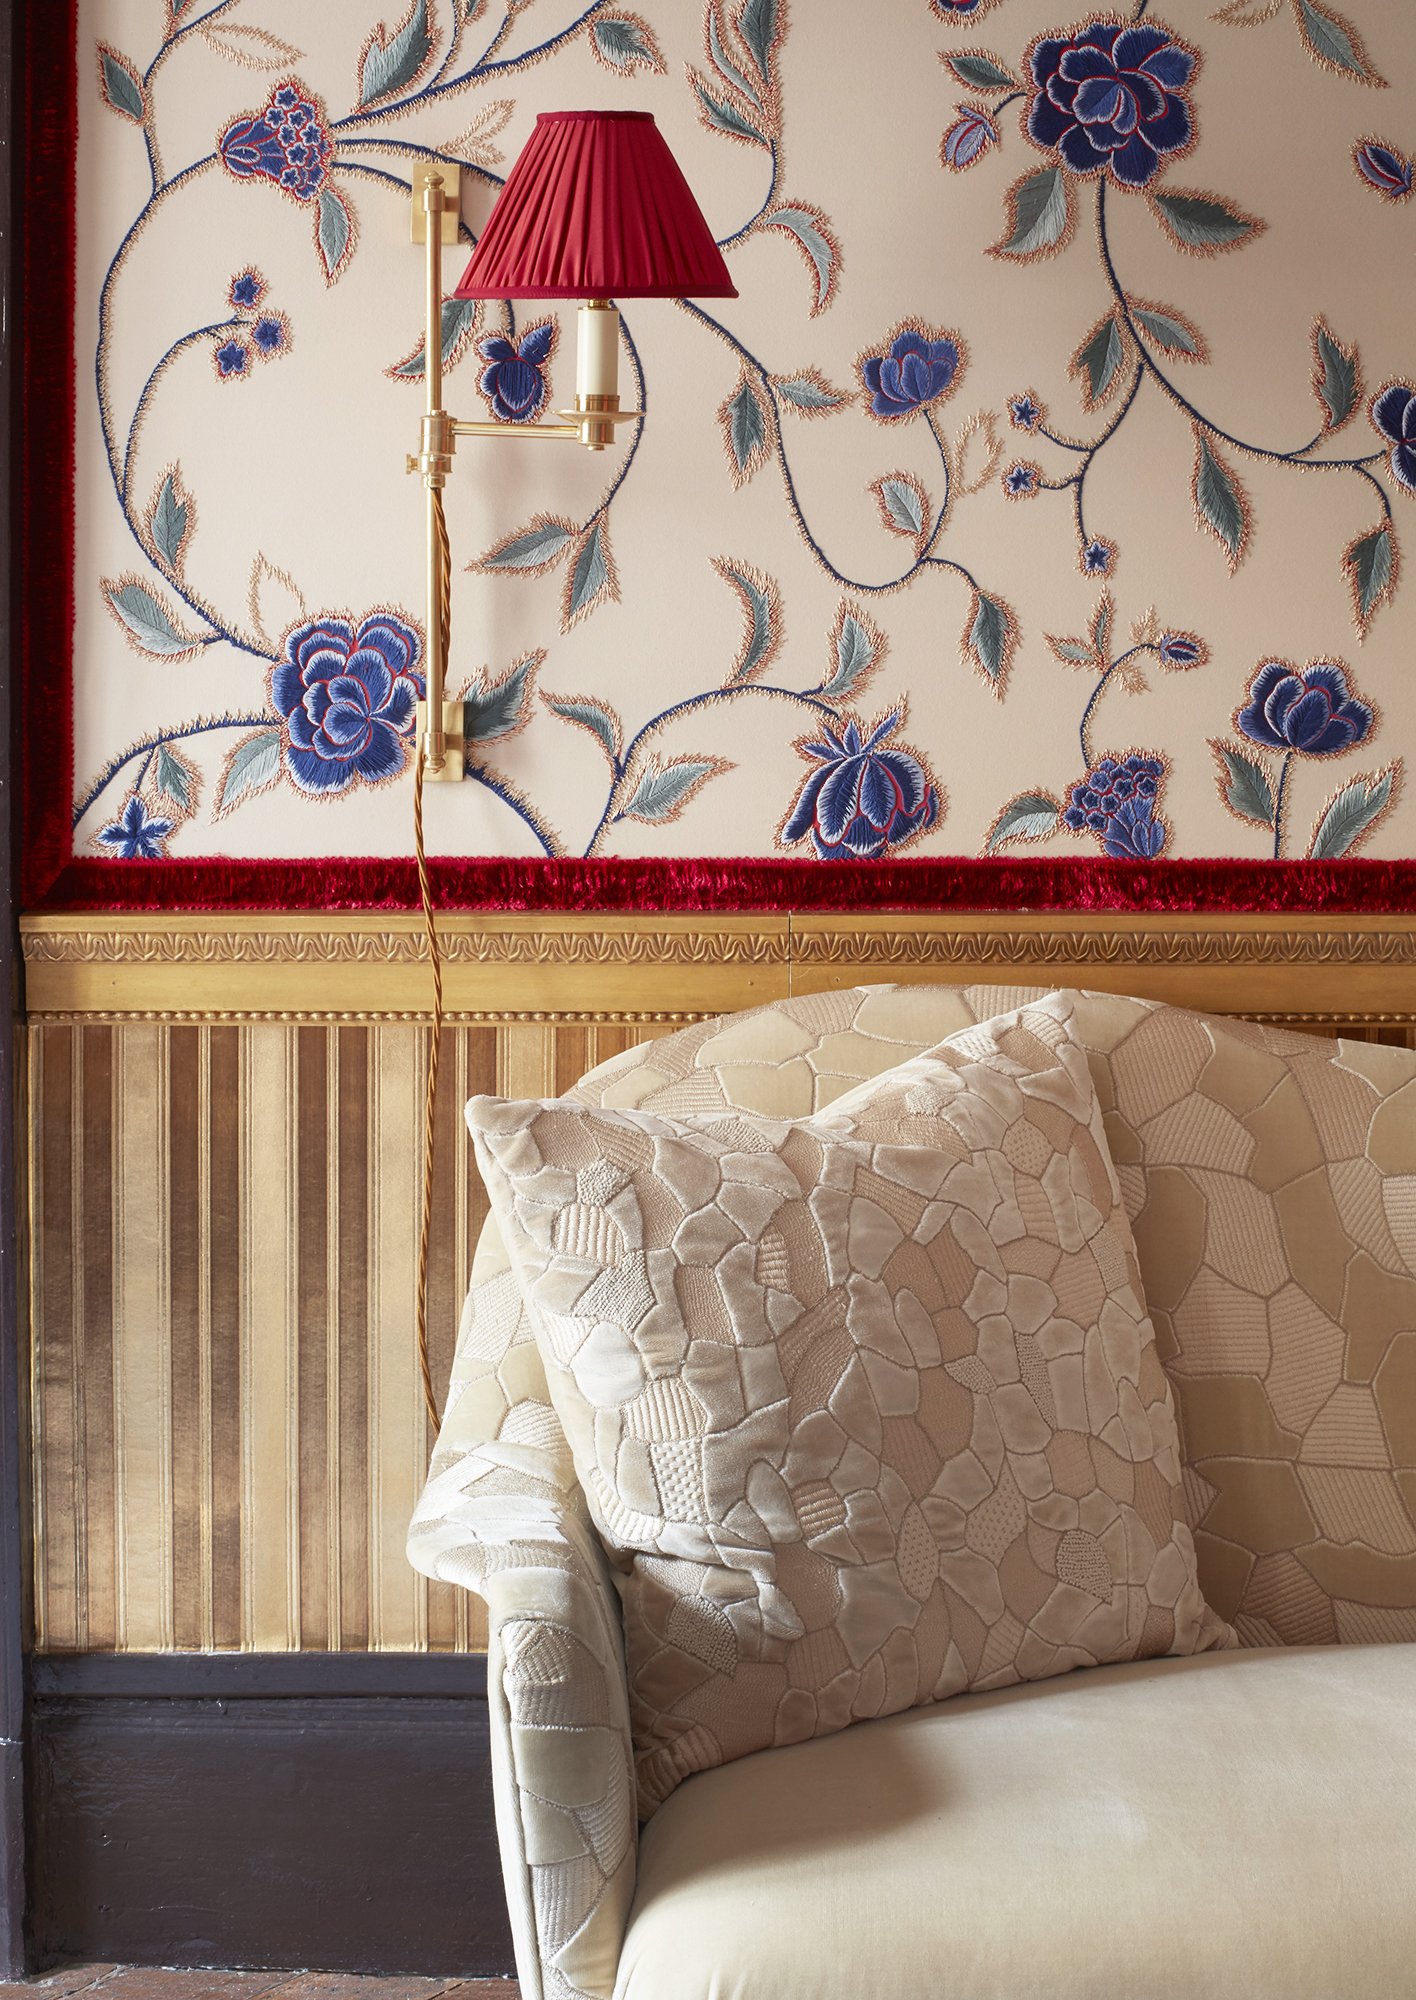 de Gournay hand embroidered 'Flora' wallcovering and hand embroidered 'Ambra' Silk Velvet from Salon Privé by Alessandra Branca. Photo credit: Simon Upton